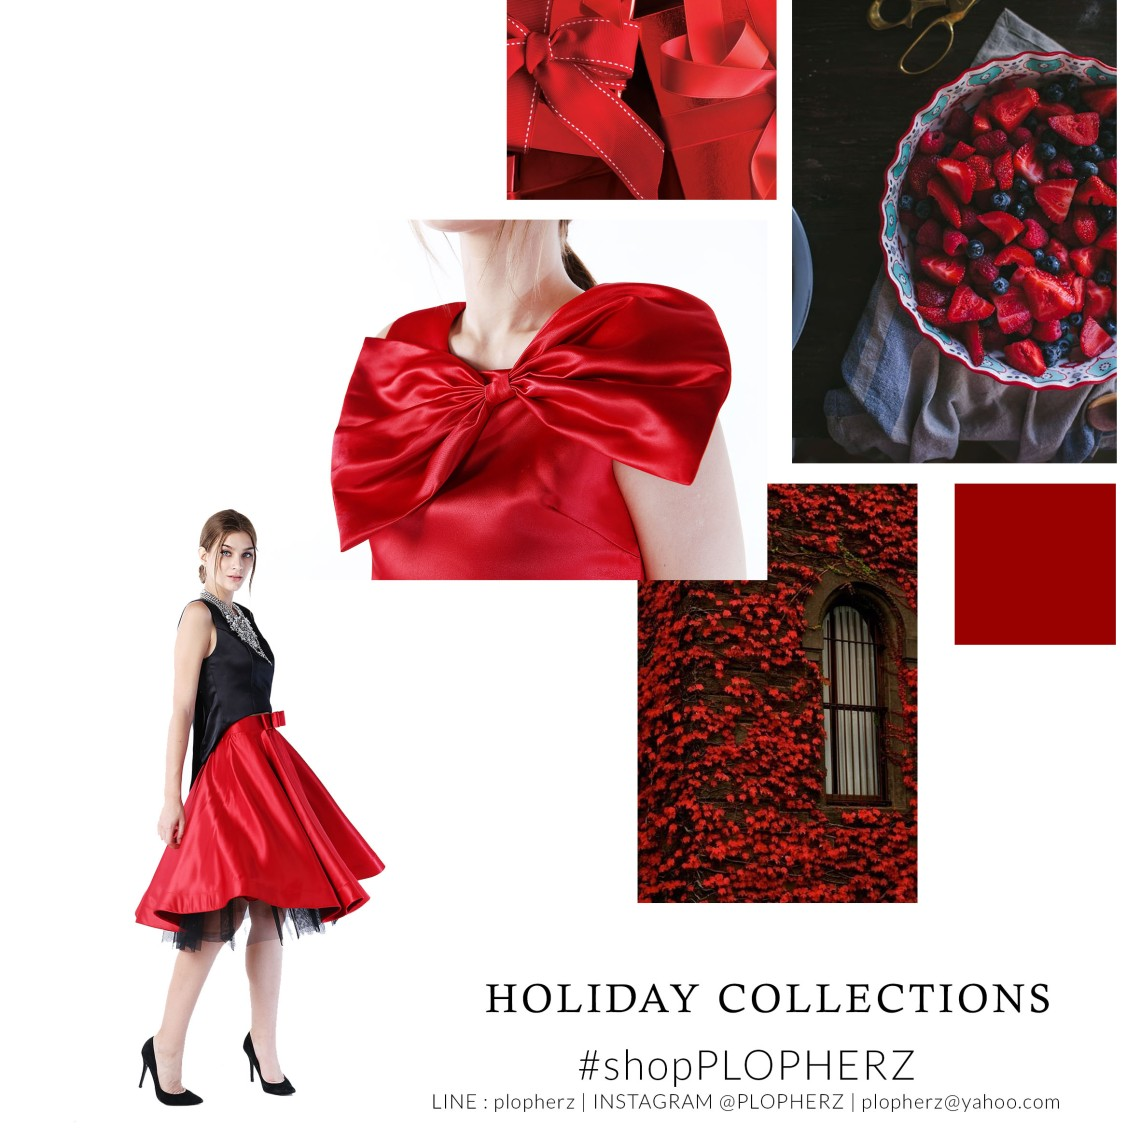 holiday collections moodboard RED